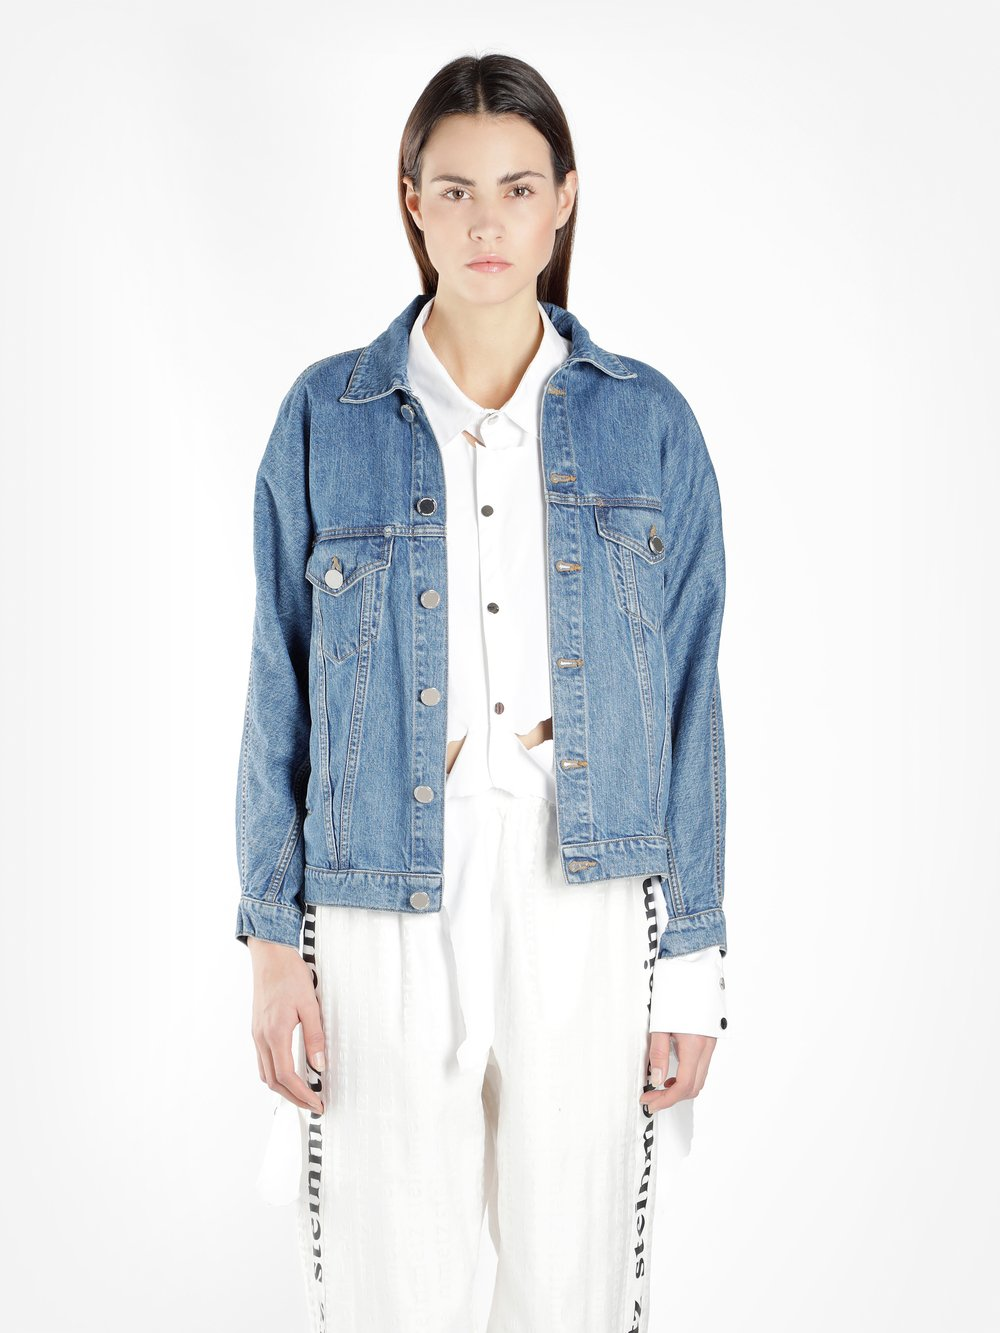 FAUSTINE STEINMETZ WOMEN'S BLUE RECYCLED DENIM JACKET